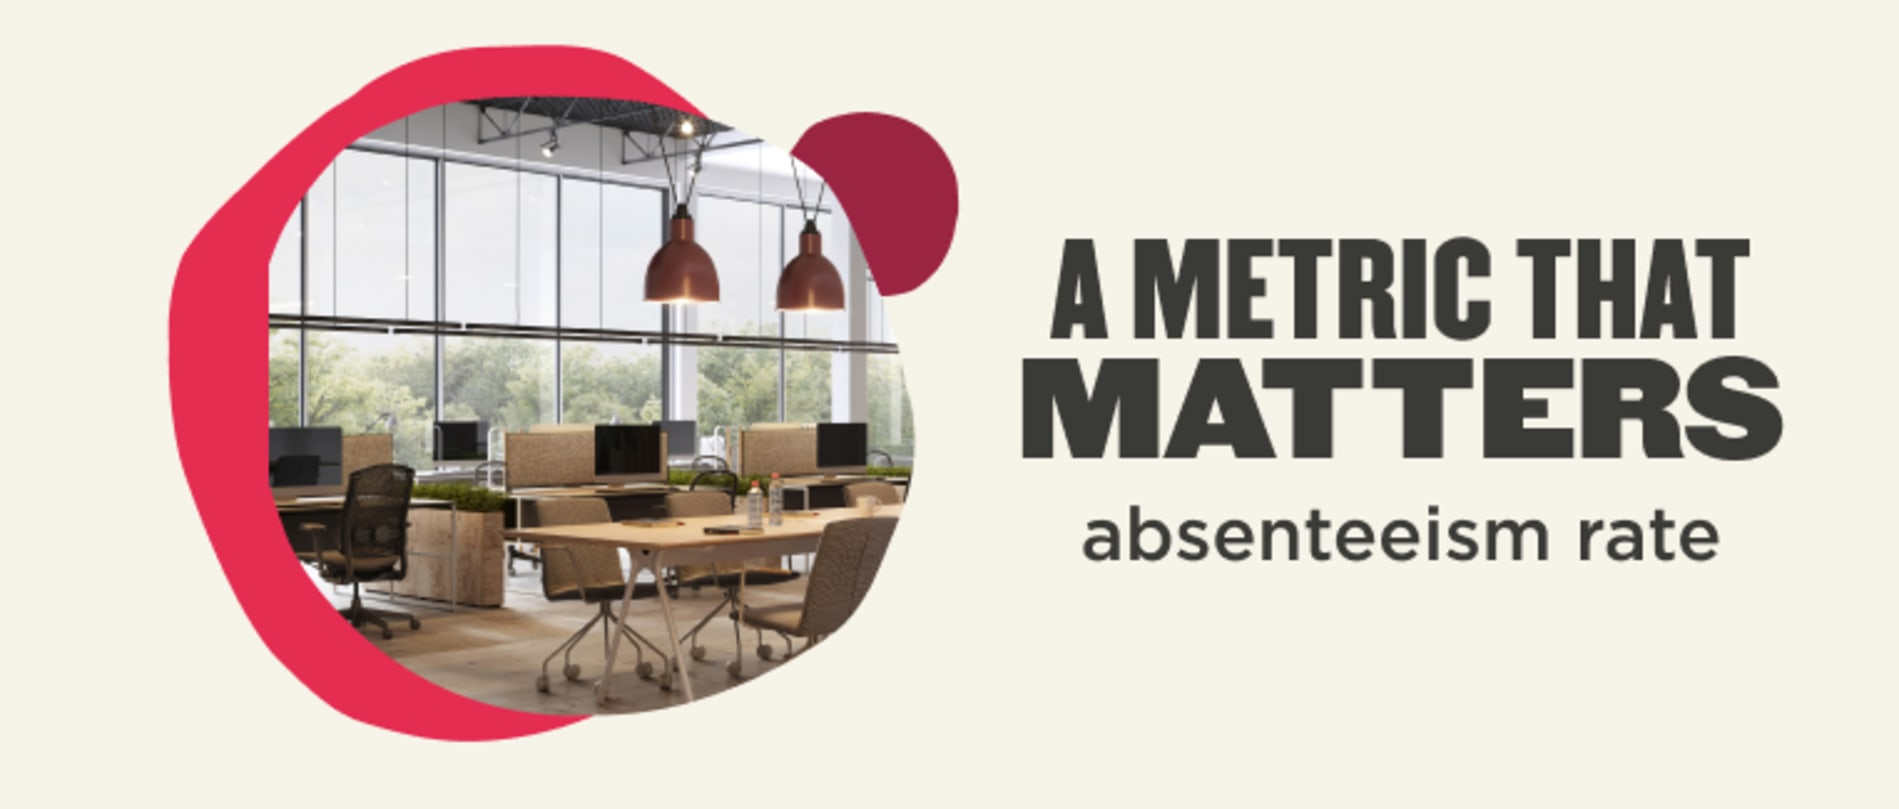 A metric that matters (absenteeism rate)